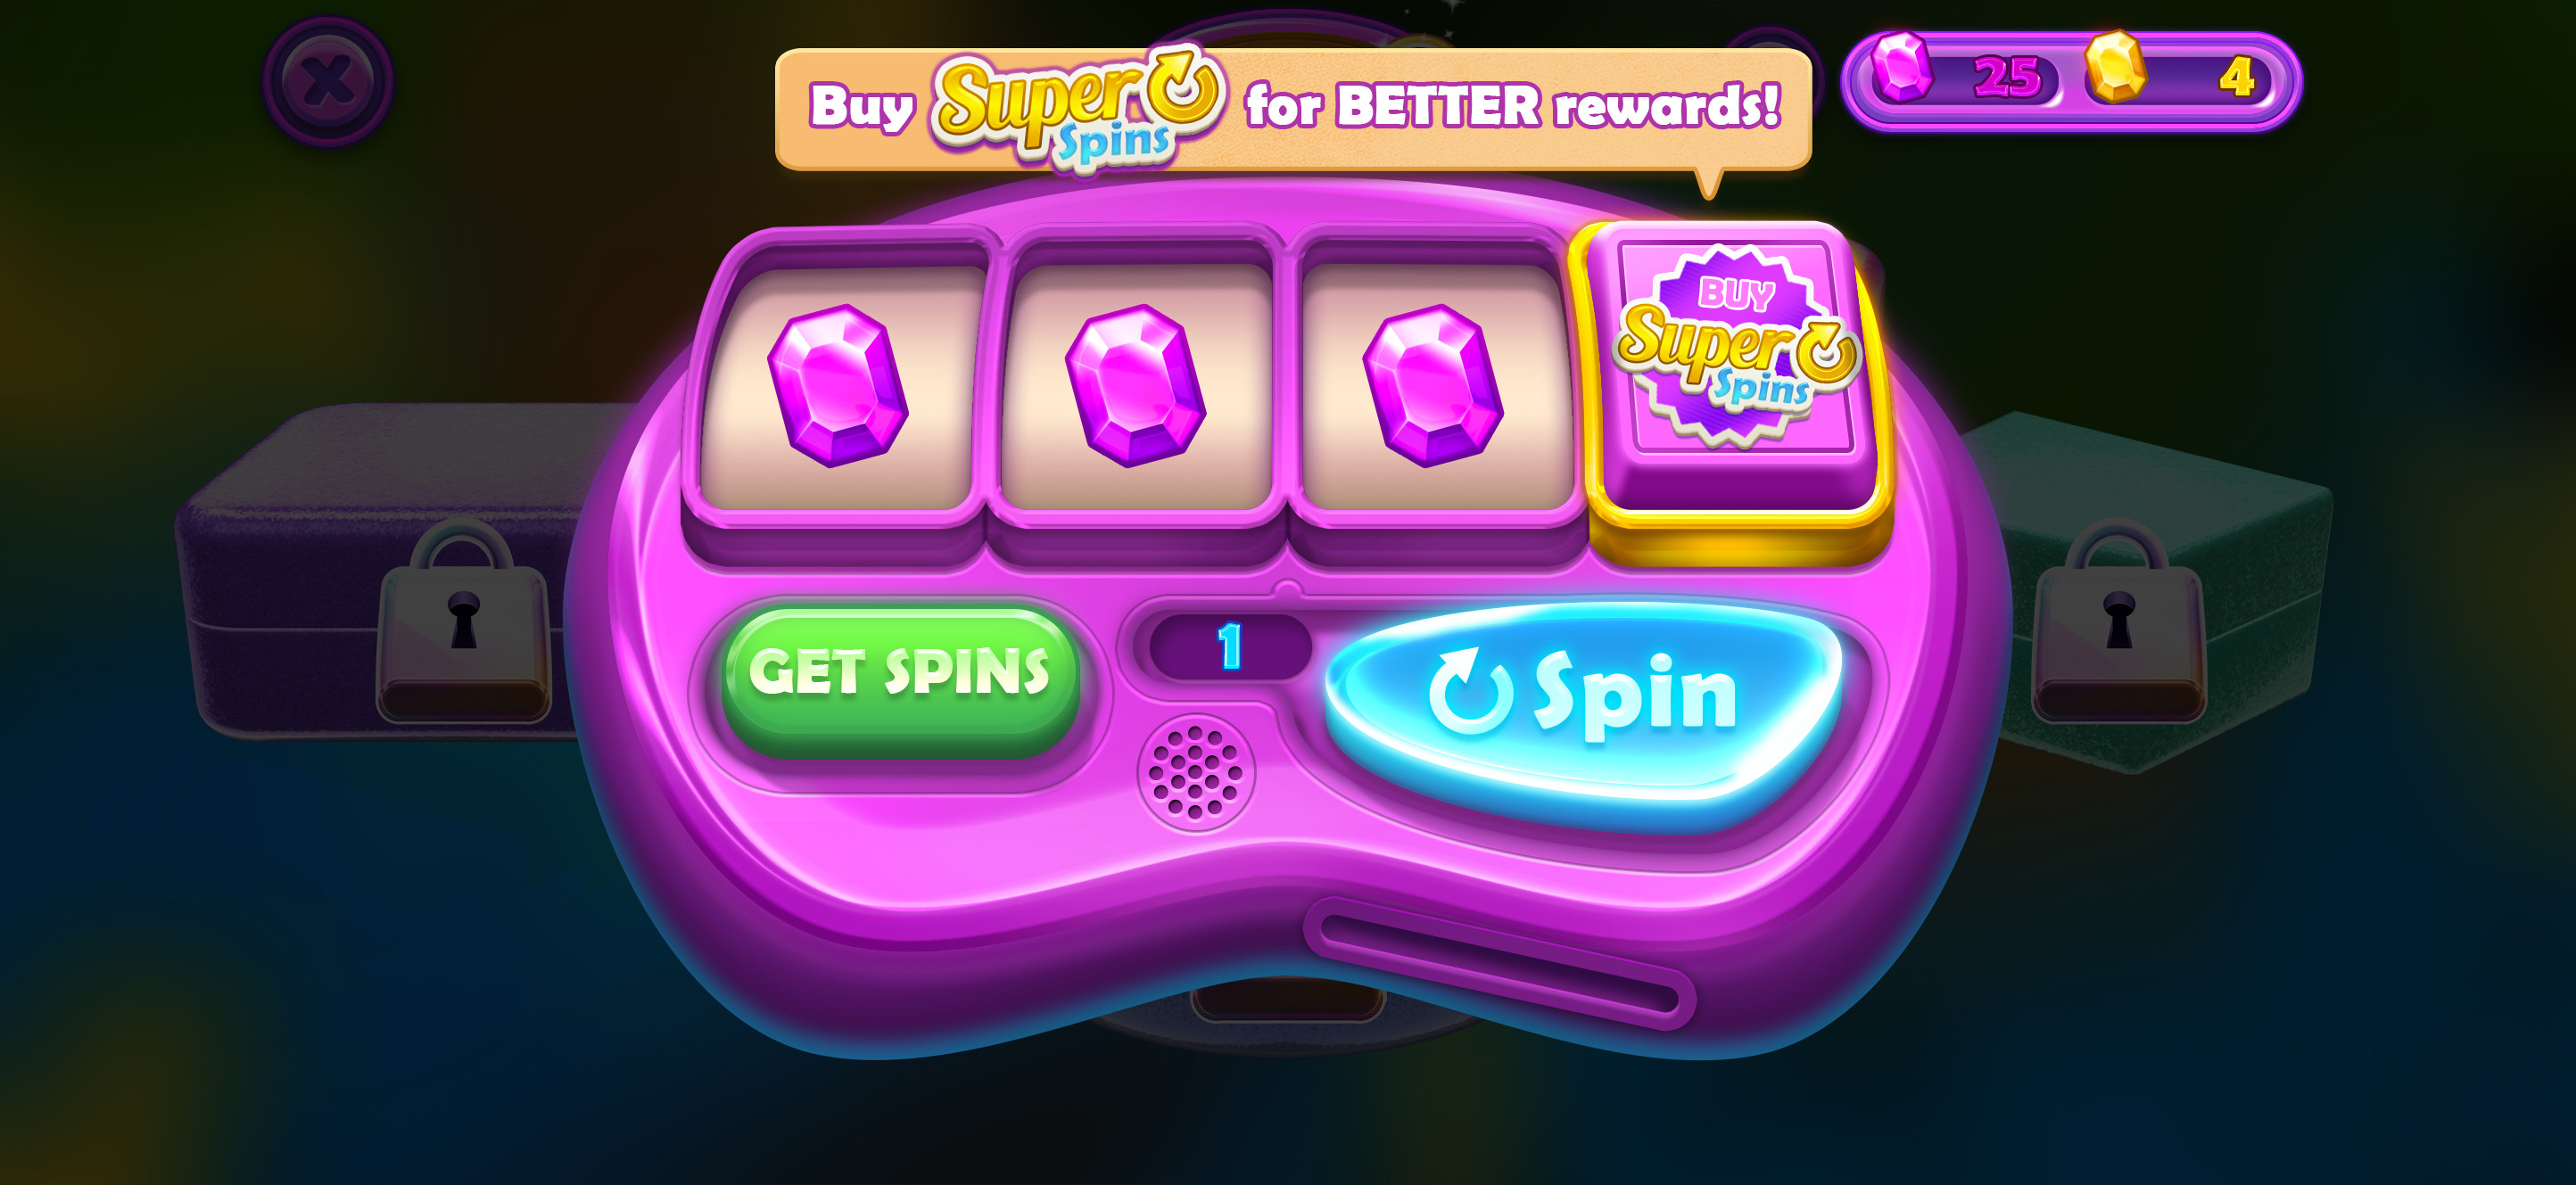 Purchase Super Spins for an extra reel on the spinner and a better chance for Super Gems.